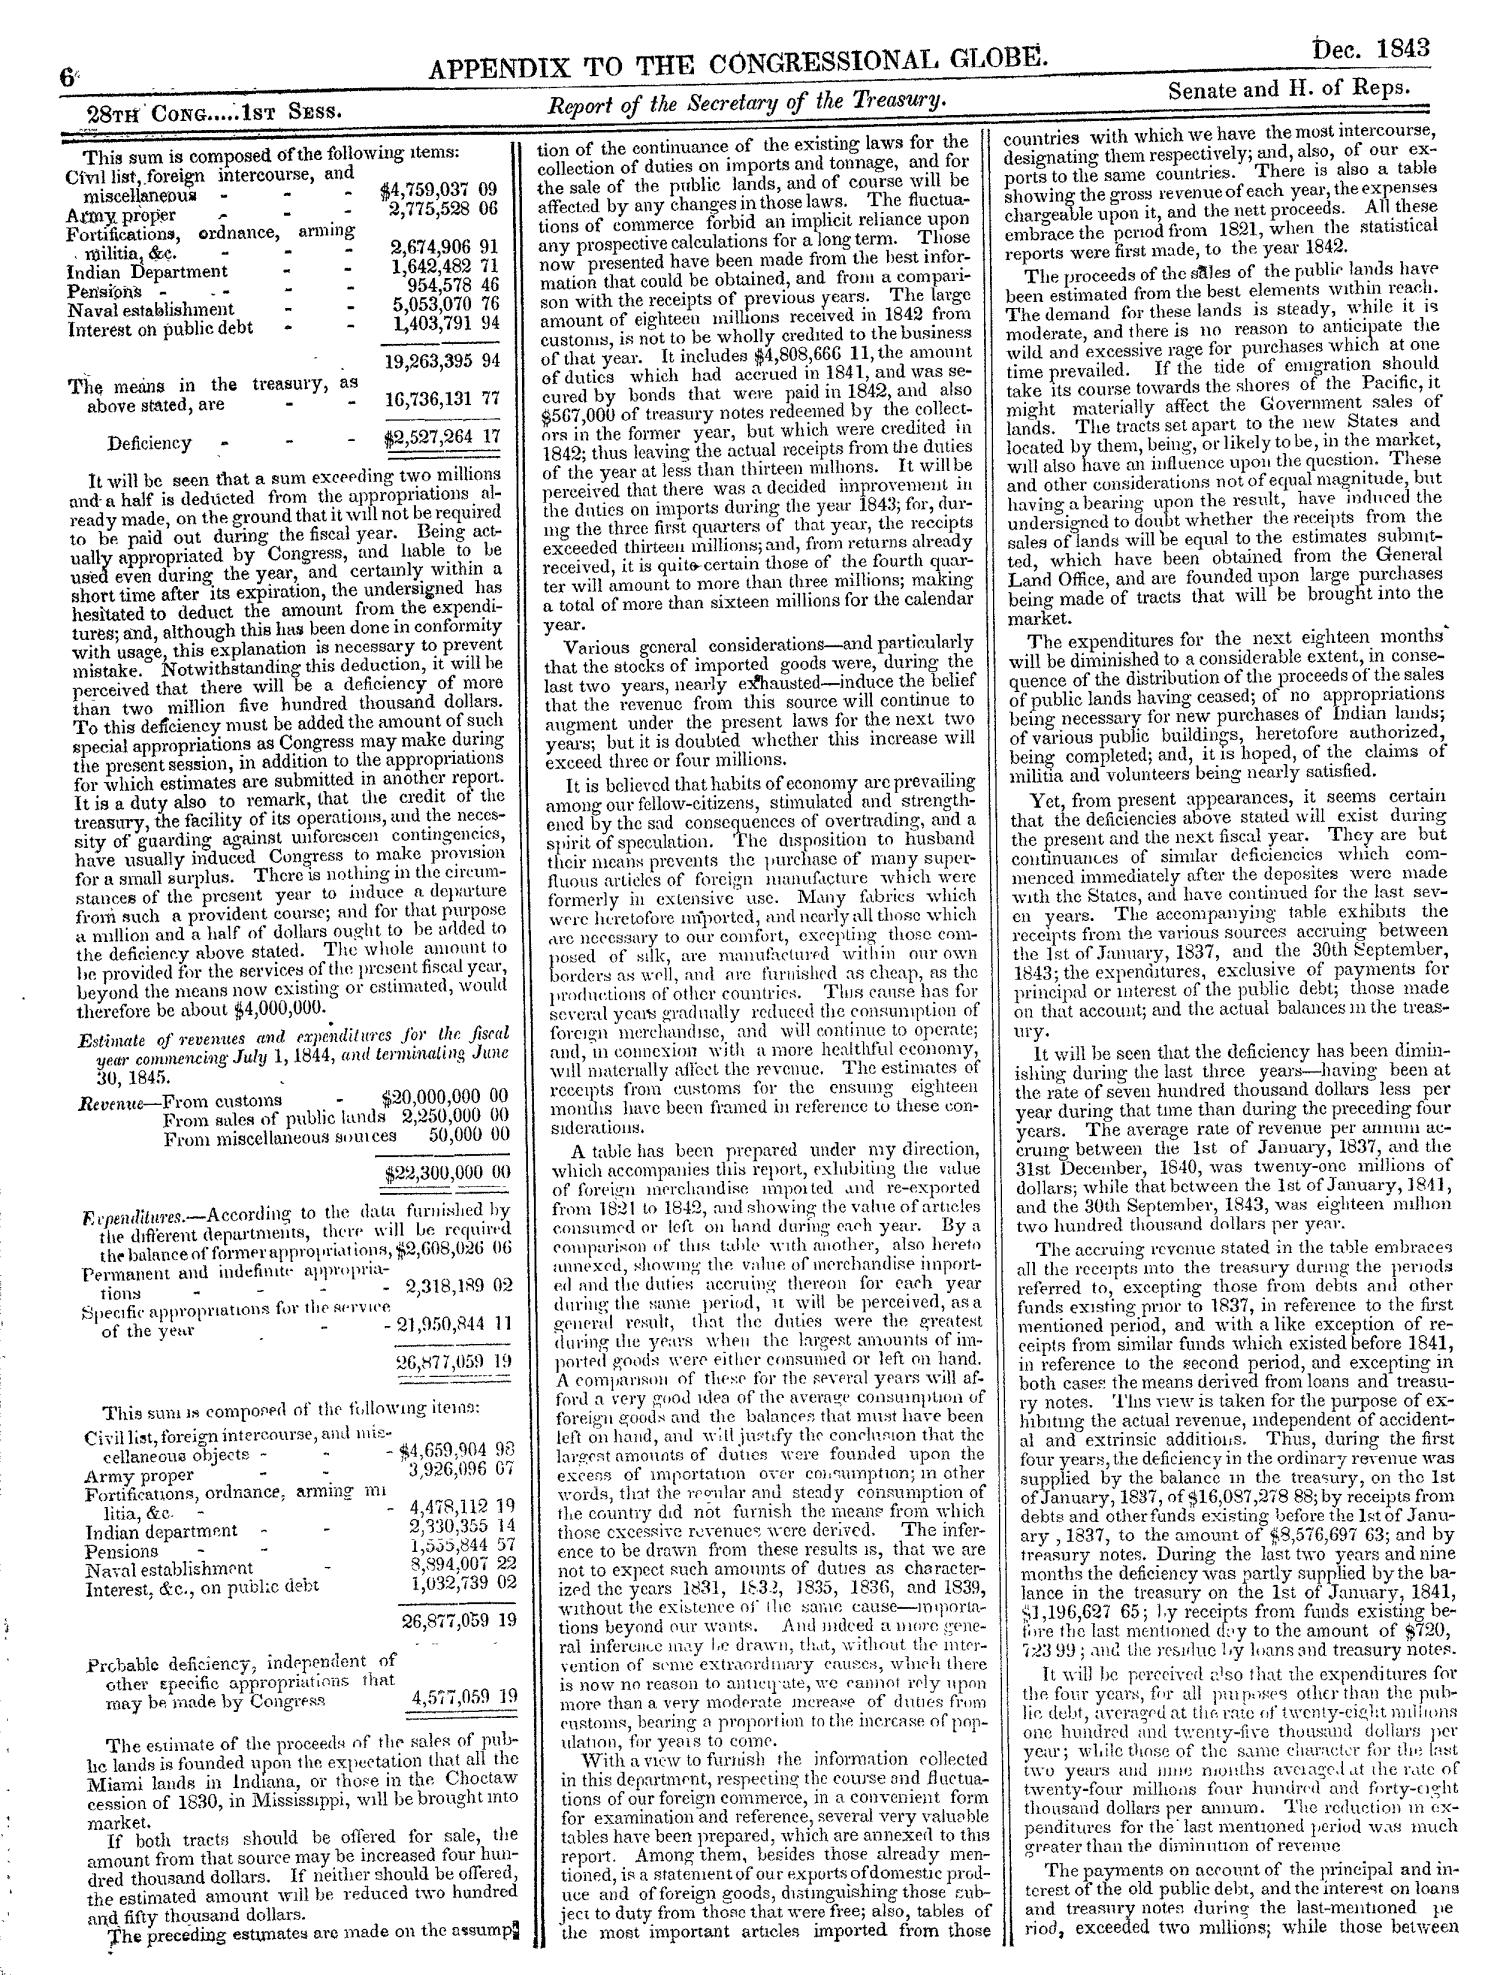 The Congressional Globe, Volume 13, Part 2: Twenty-Eighth Congress, First Session                                                                                                      6